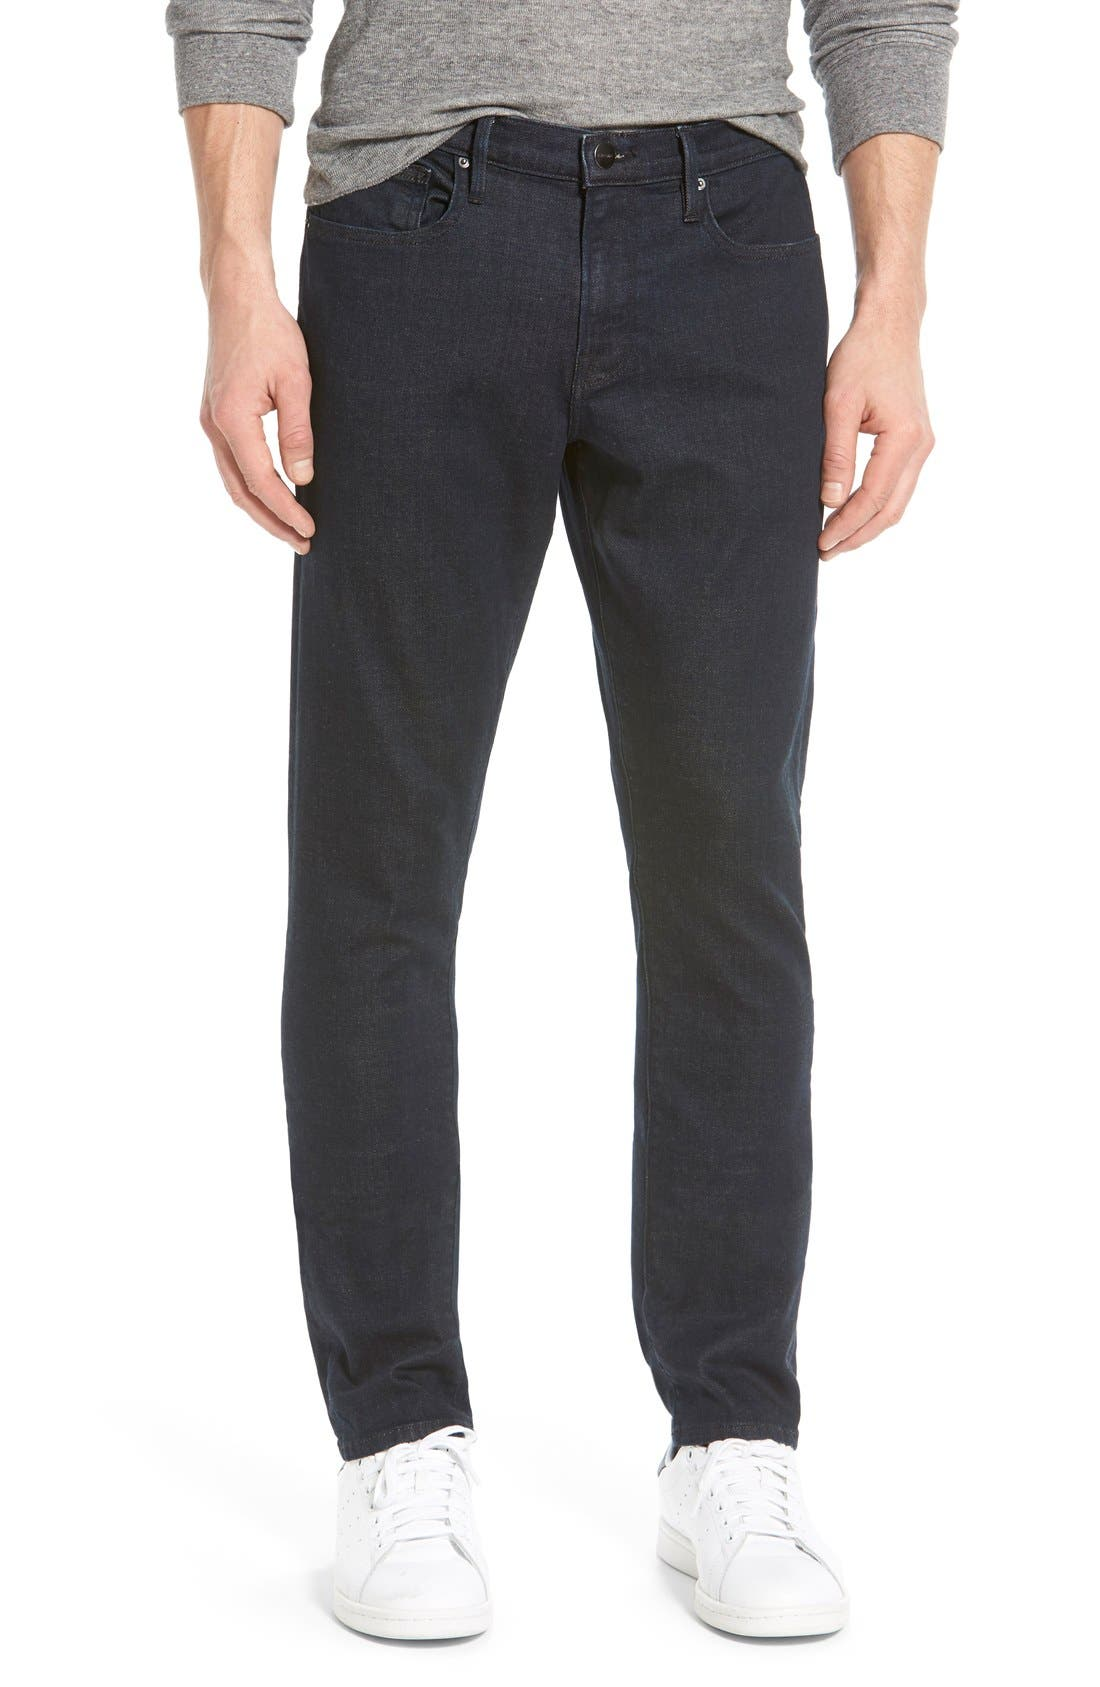 'L'Homme' Slim Fit Jeans,                         Main,                         color, Edison